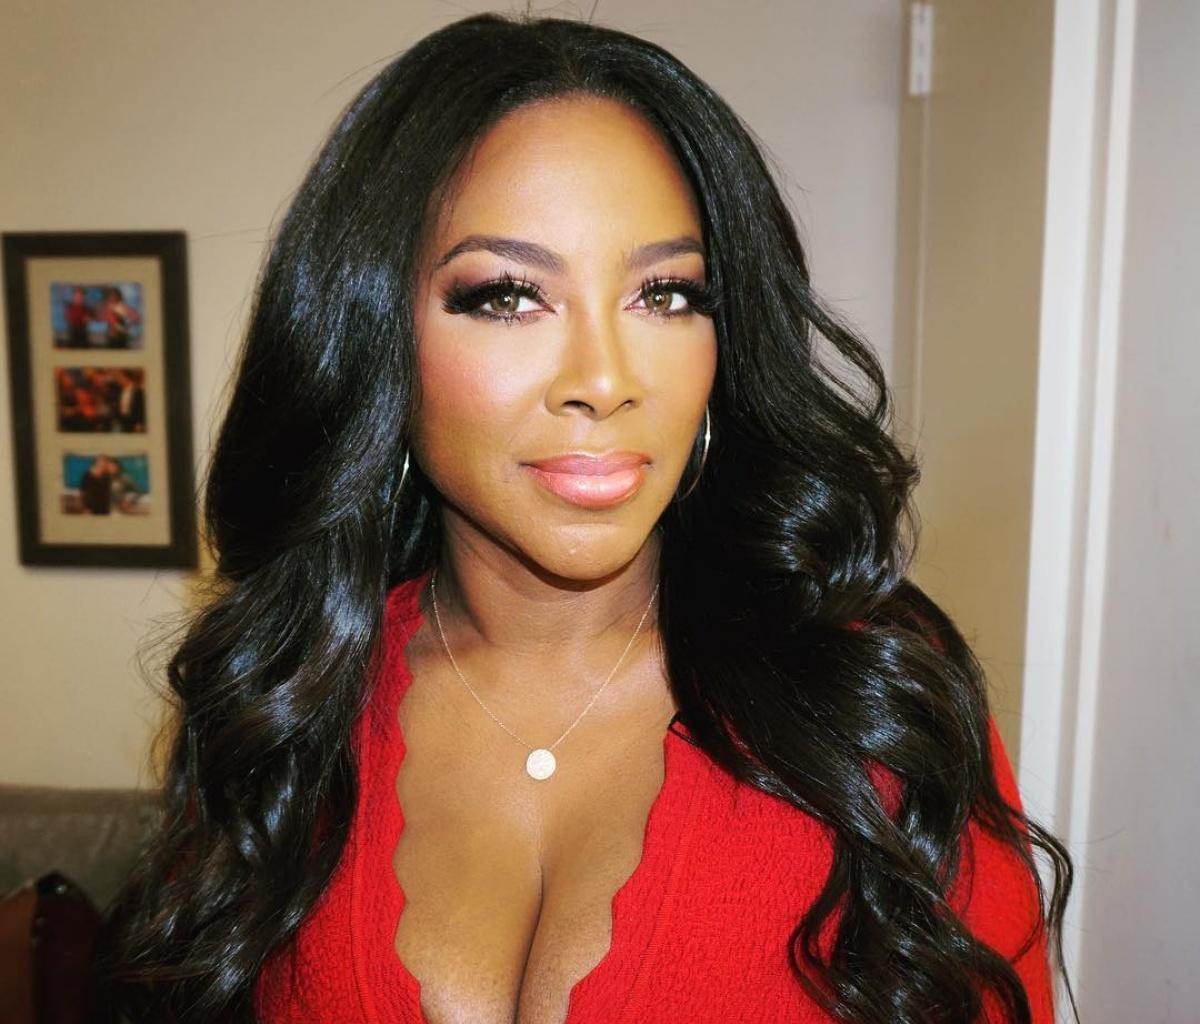 Kenya Moore Shows Off Her Natural 24 Inches-Long, Super Thick And Healthy Hair While Promoting Her Hair Care Line - See The Video & Pics